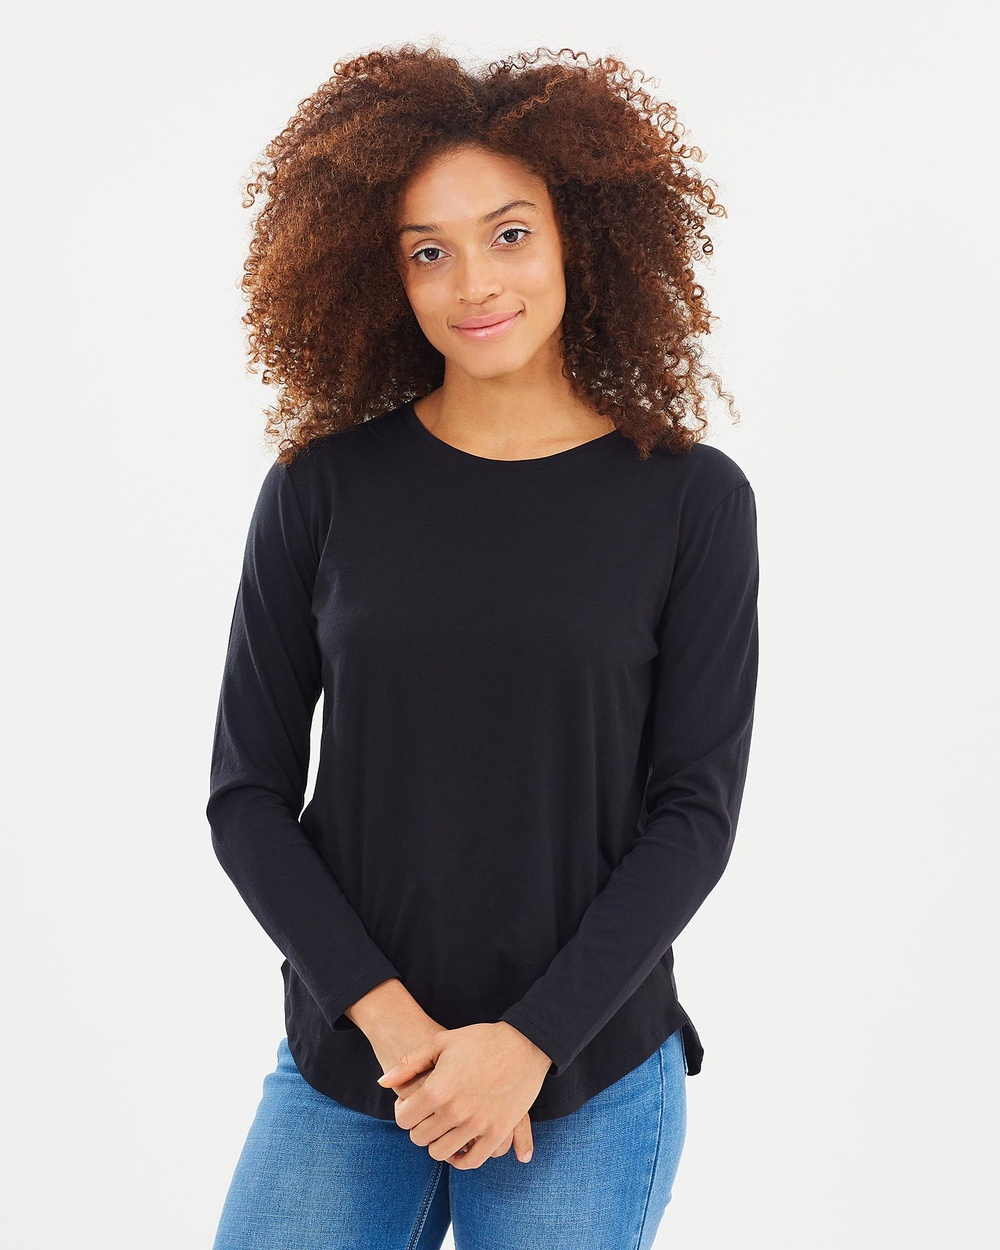 Casa Amuk Saddle Hem Long Sleeve Tee Tops Black Saddle Hem Long-Sleeve Tee